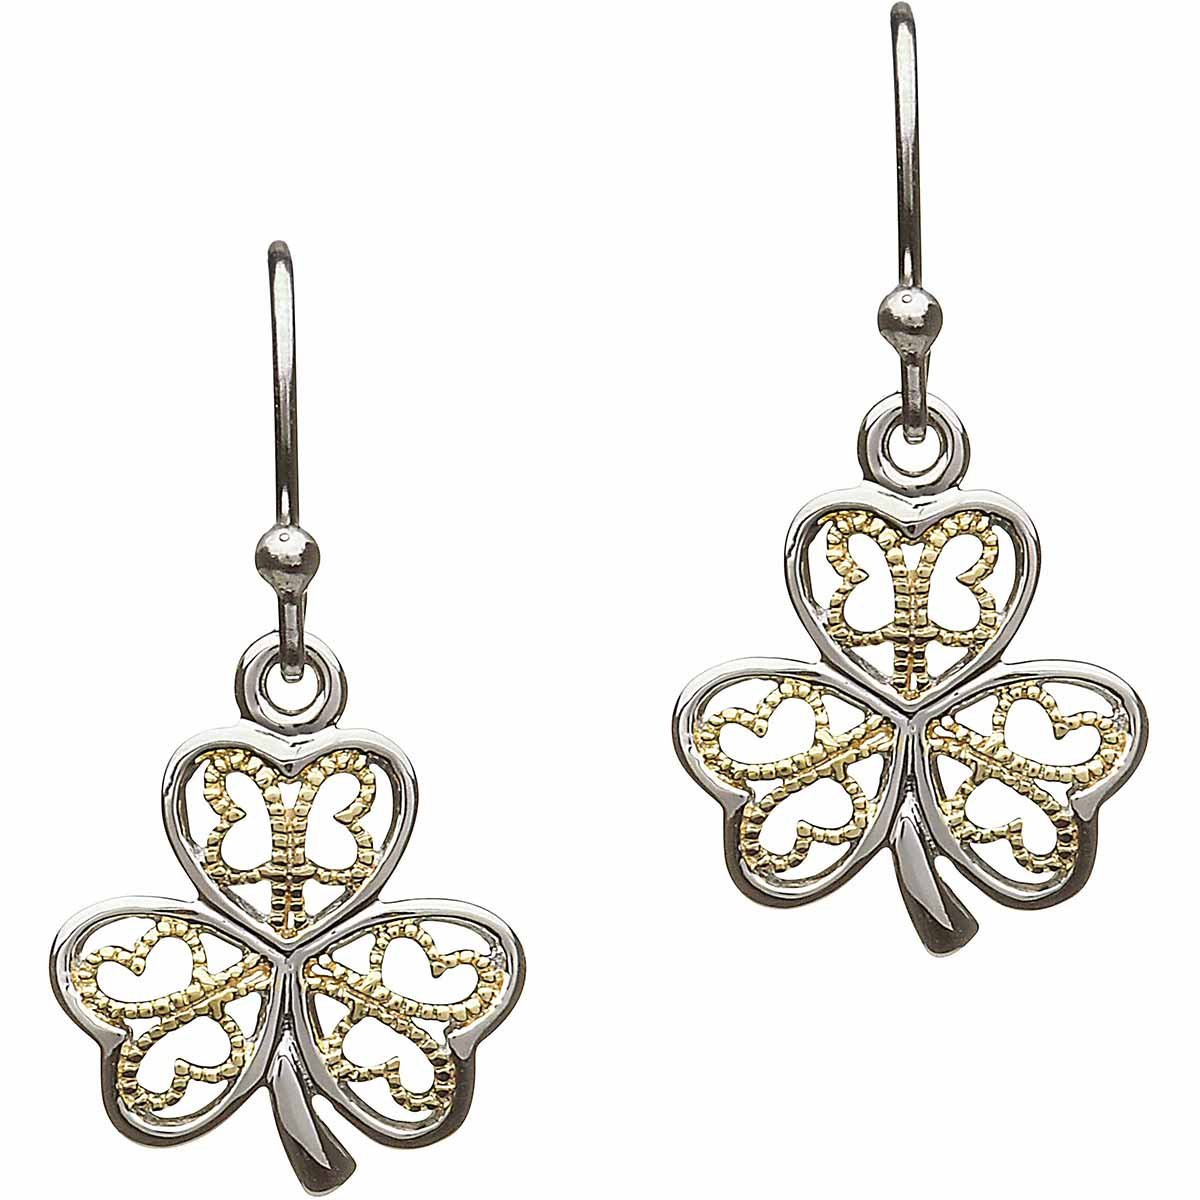 Shamrock Earrings - Sterling Silver Filigree Shamrock Earrings